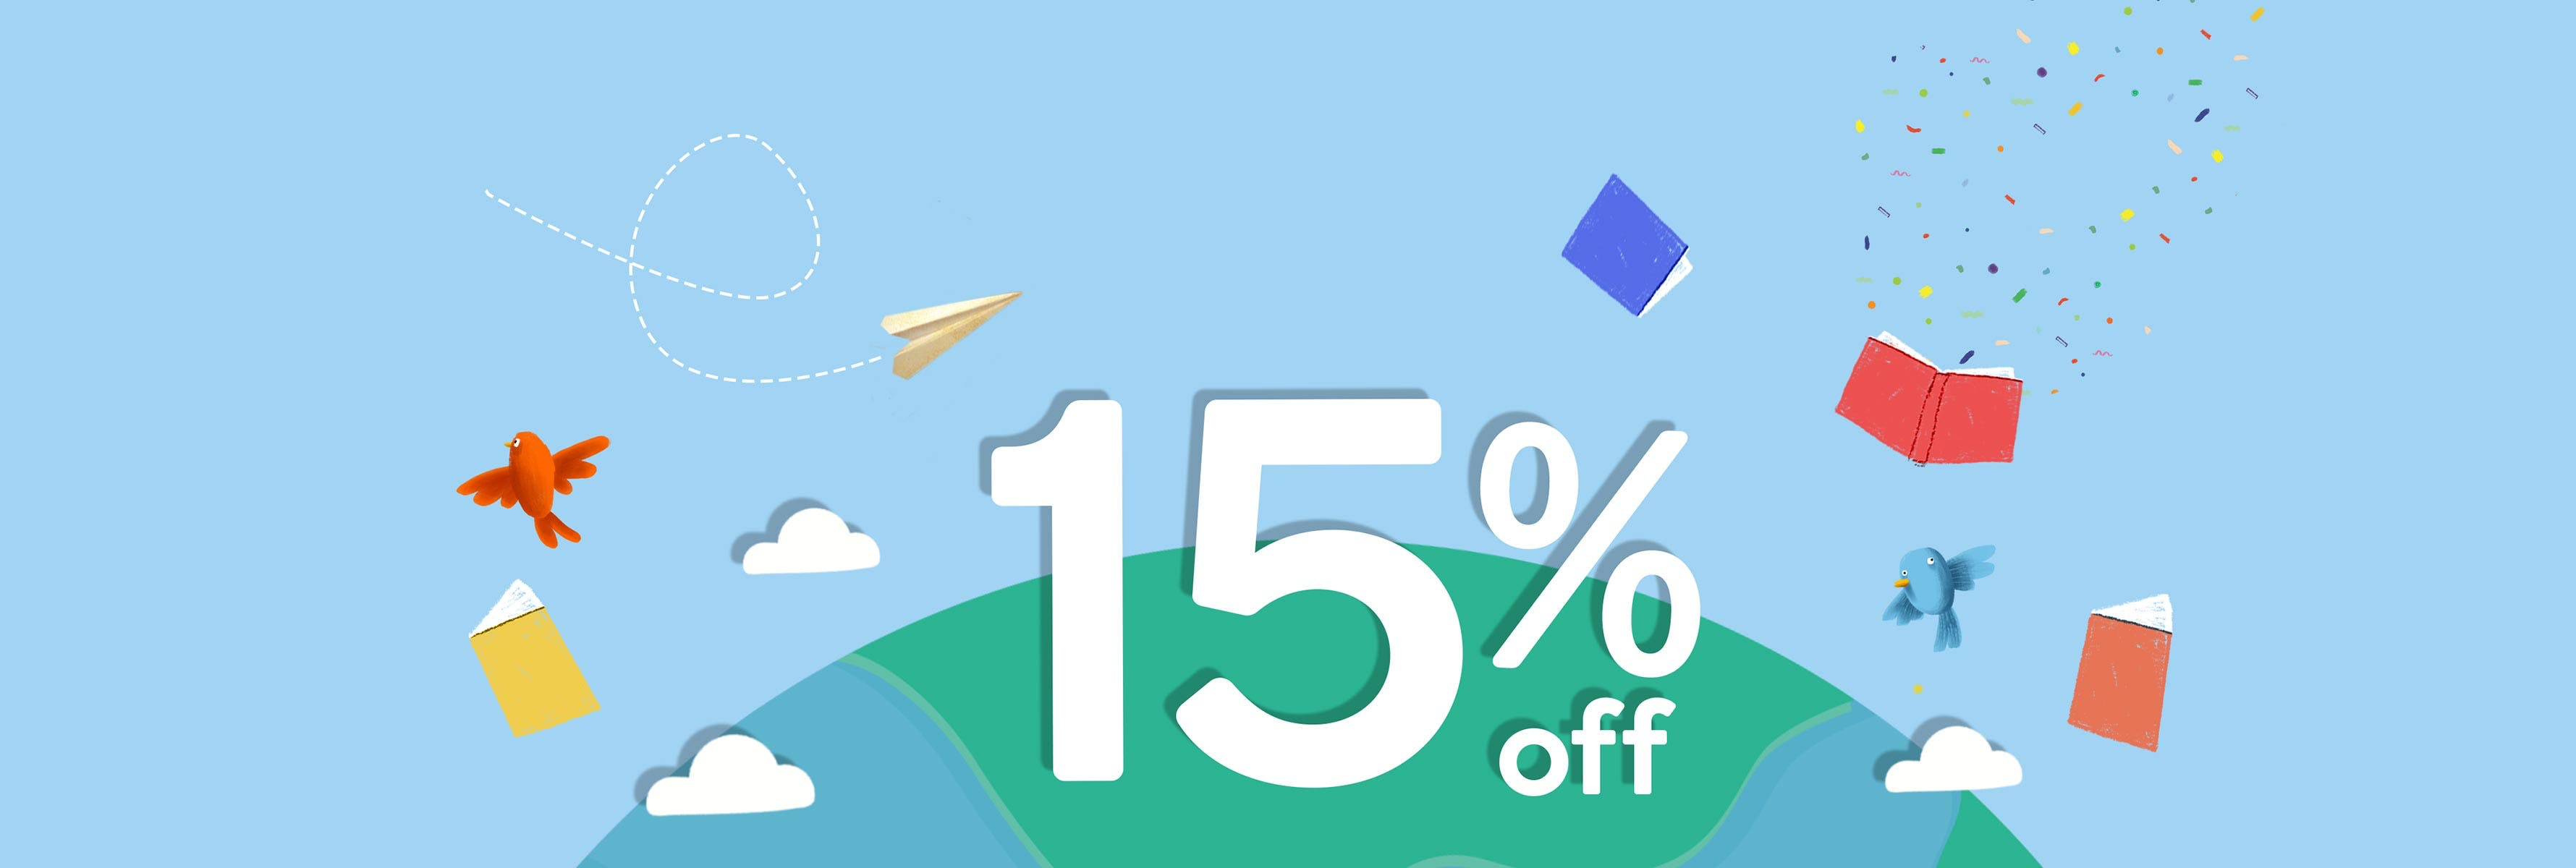 A banner with Earth crowded by flying books and a spaceship circulating our 15% off offer